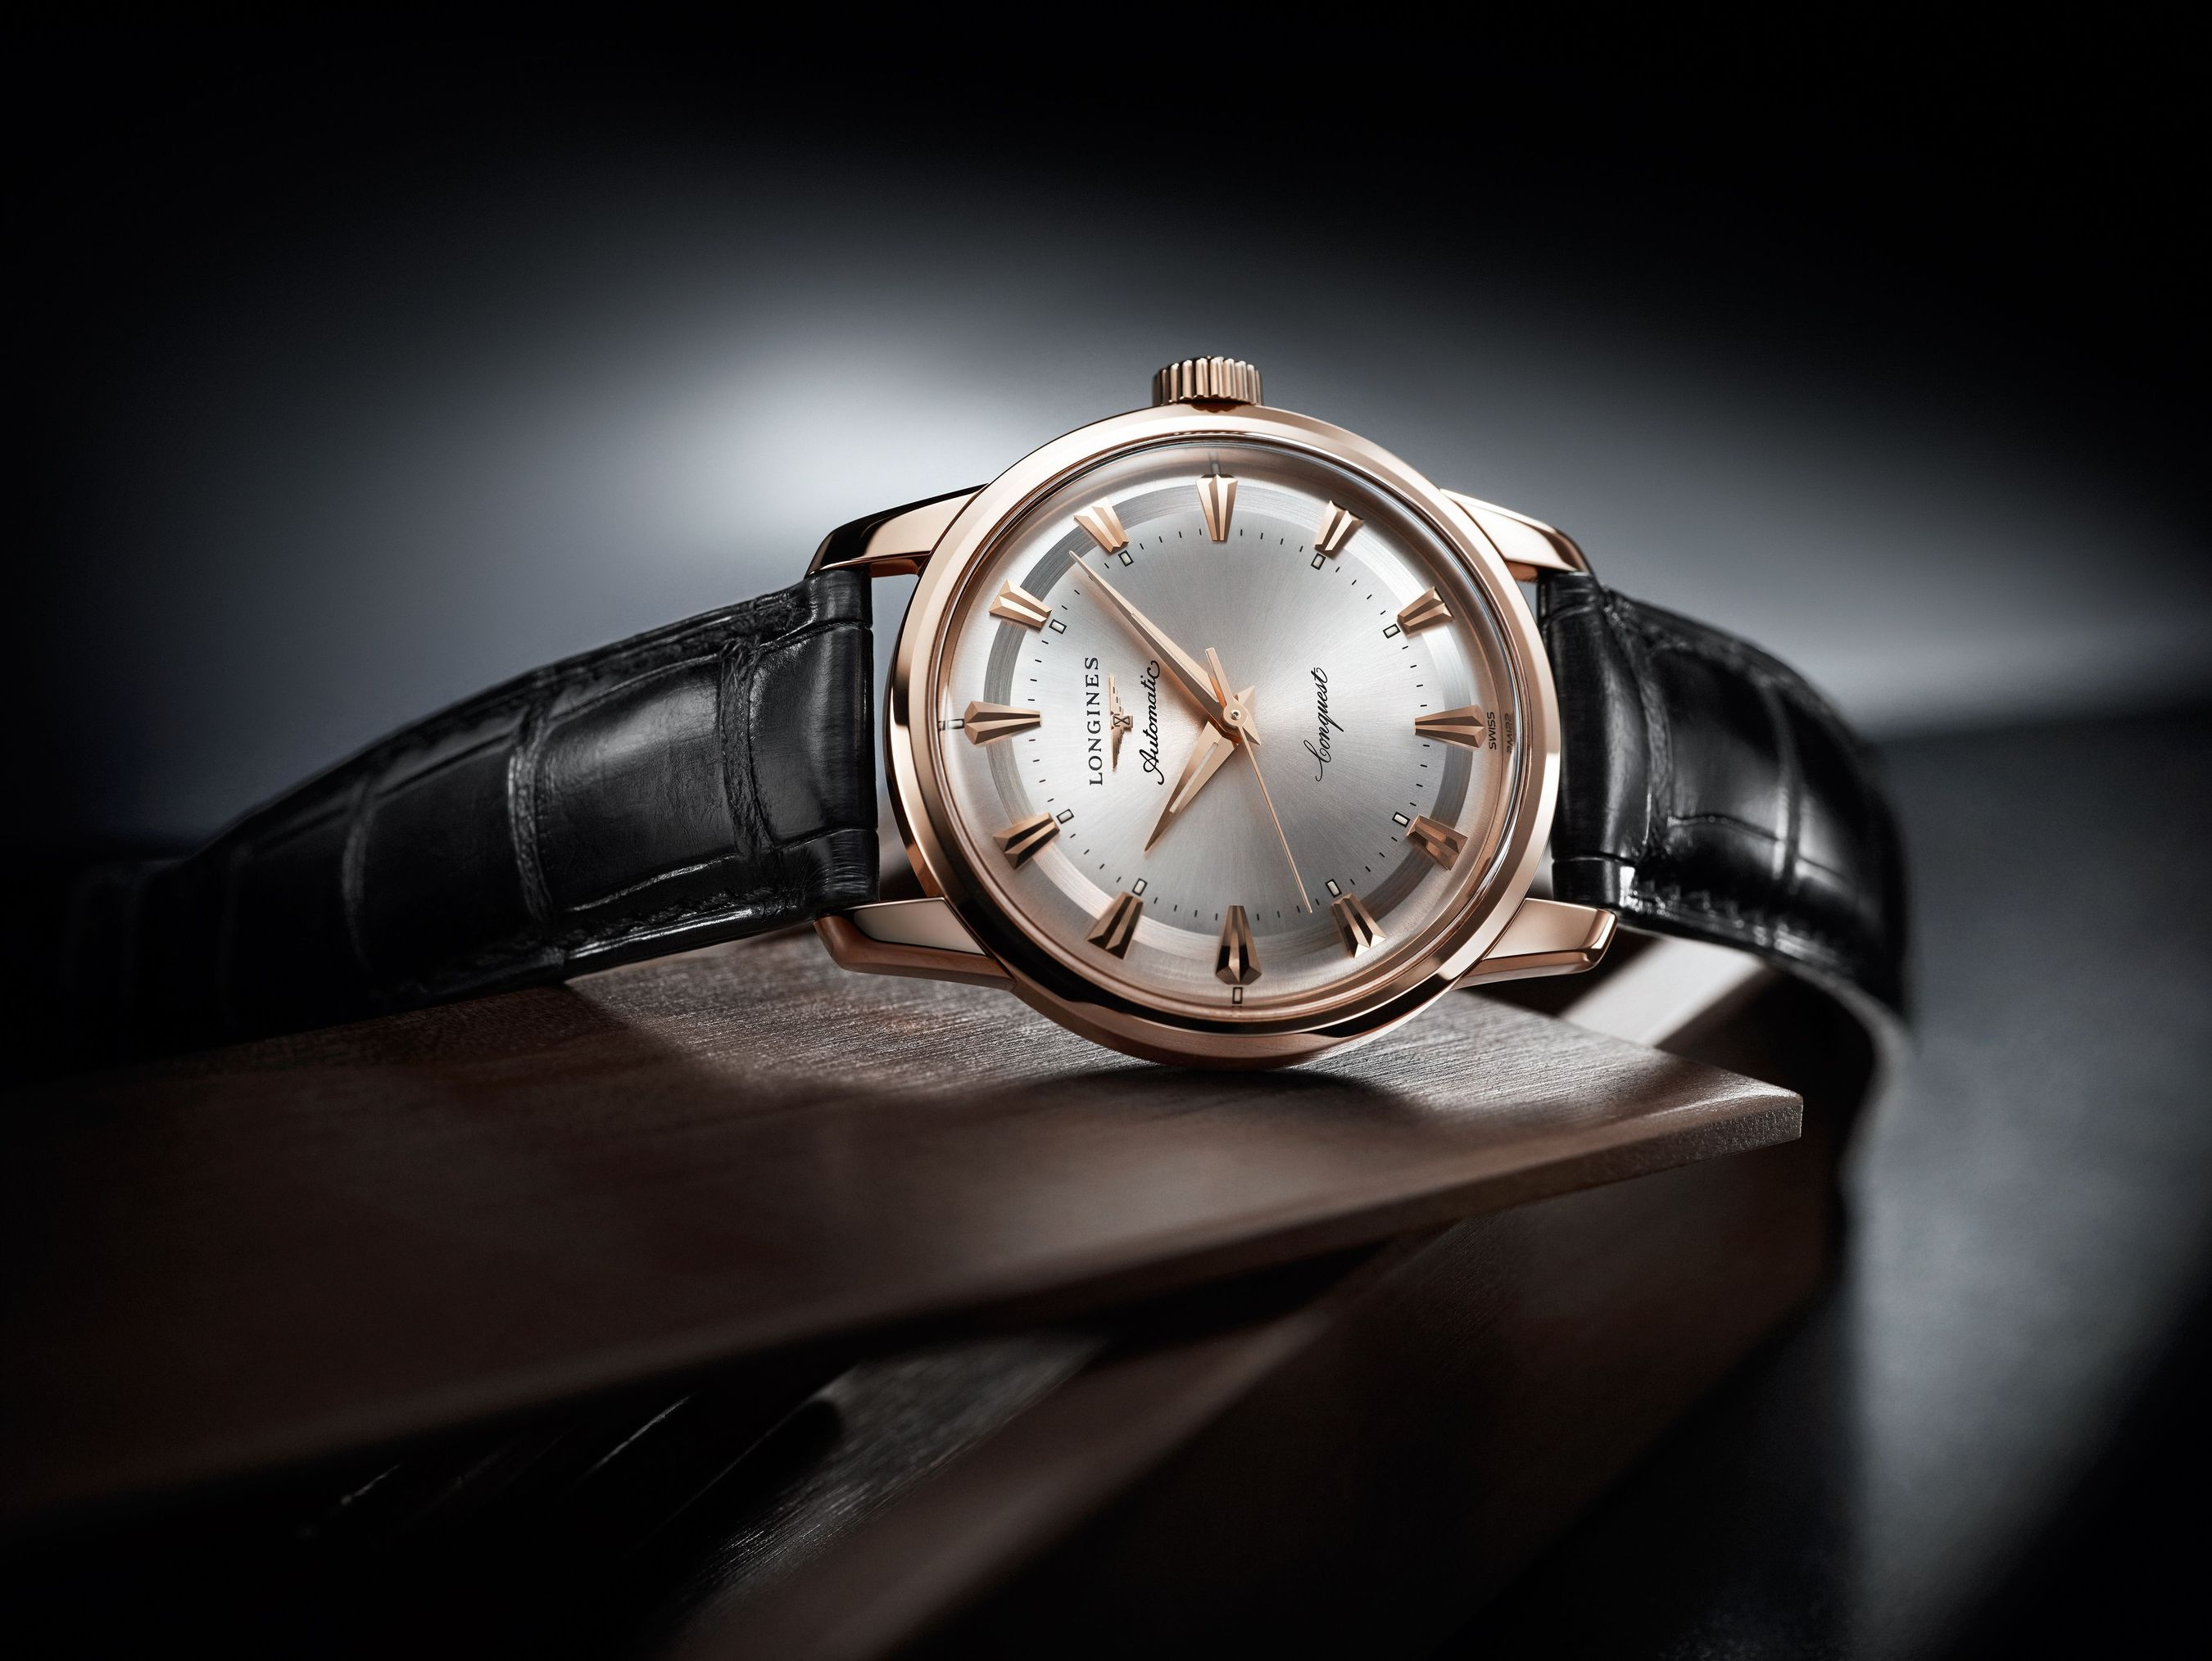 """This year, Longines celebrates the 60th anniversary of the filing of the patent for its """"Conquest"""" brand. To mark this occasion, the Swiss watch company is launching its Conquest Heritage 1954-2014. With a diameter of 35 mm, this model in rose gold displays a sunray silver dial with pink applied indices. Fitted with the mechanical calibre L633, it indicates the hours, the minutes and the seconds. The caseback is screwed down and decorated with a gold and enamel medallion representing a constellation. This timepiece is numbered and limited to 60 pieces. (PRNewsFoto/Longines)"""